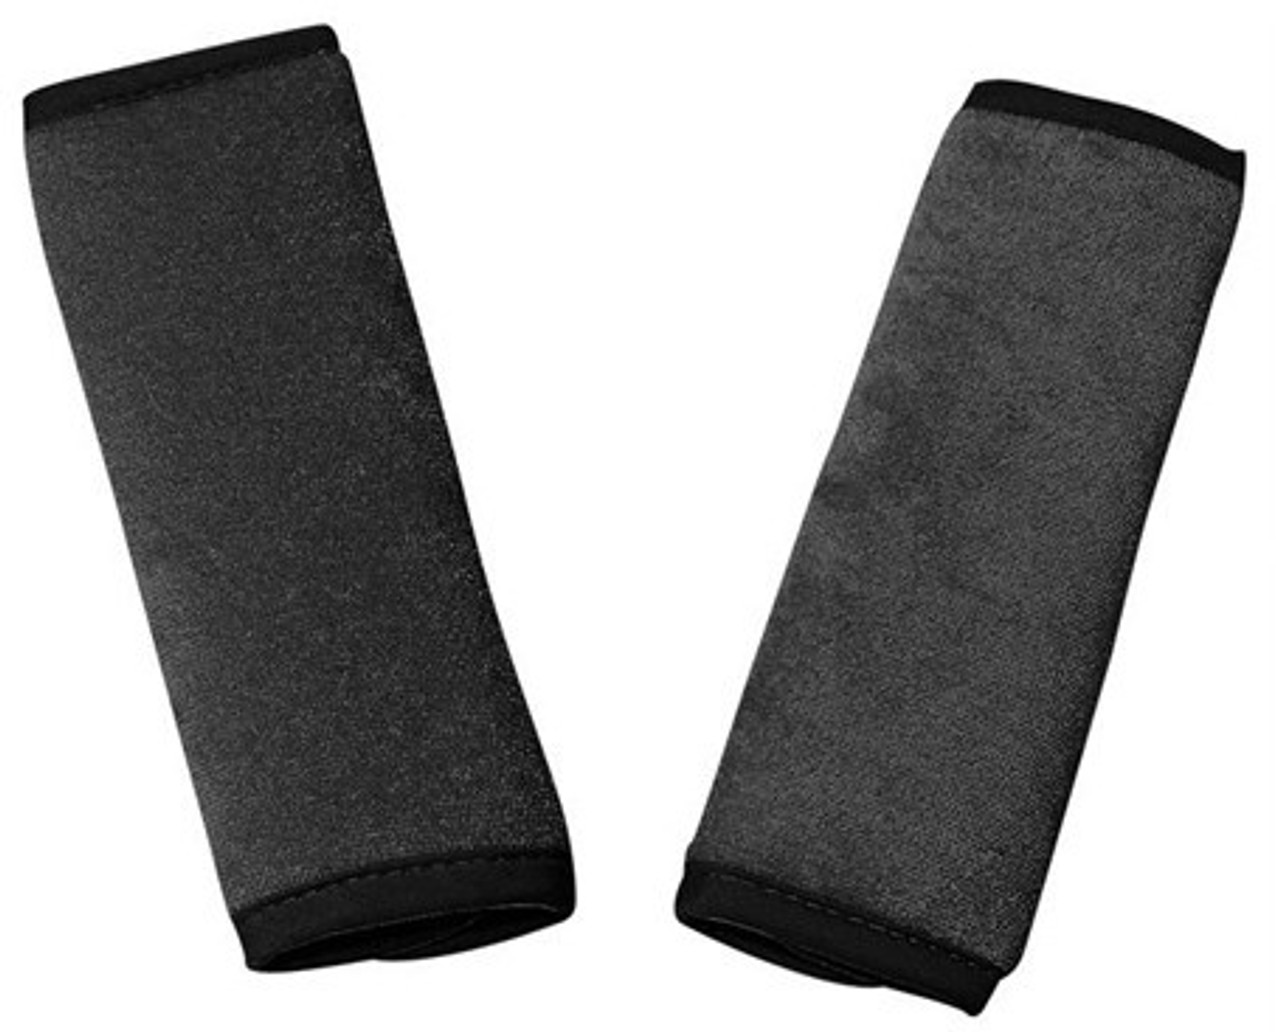 Playette Reversible Car Seat Strap Cover at Baby Barn Discounts Reversible seat strap covers provide extra soft comfort for baby and protect from irritation.